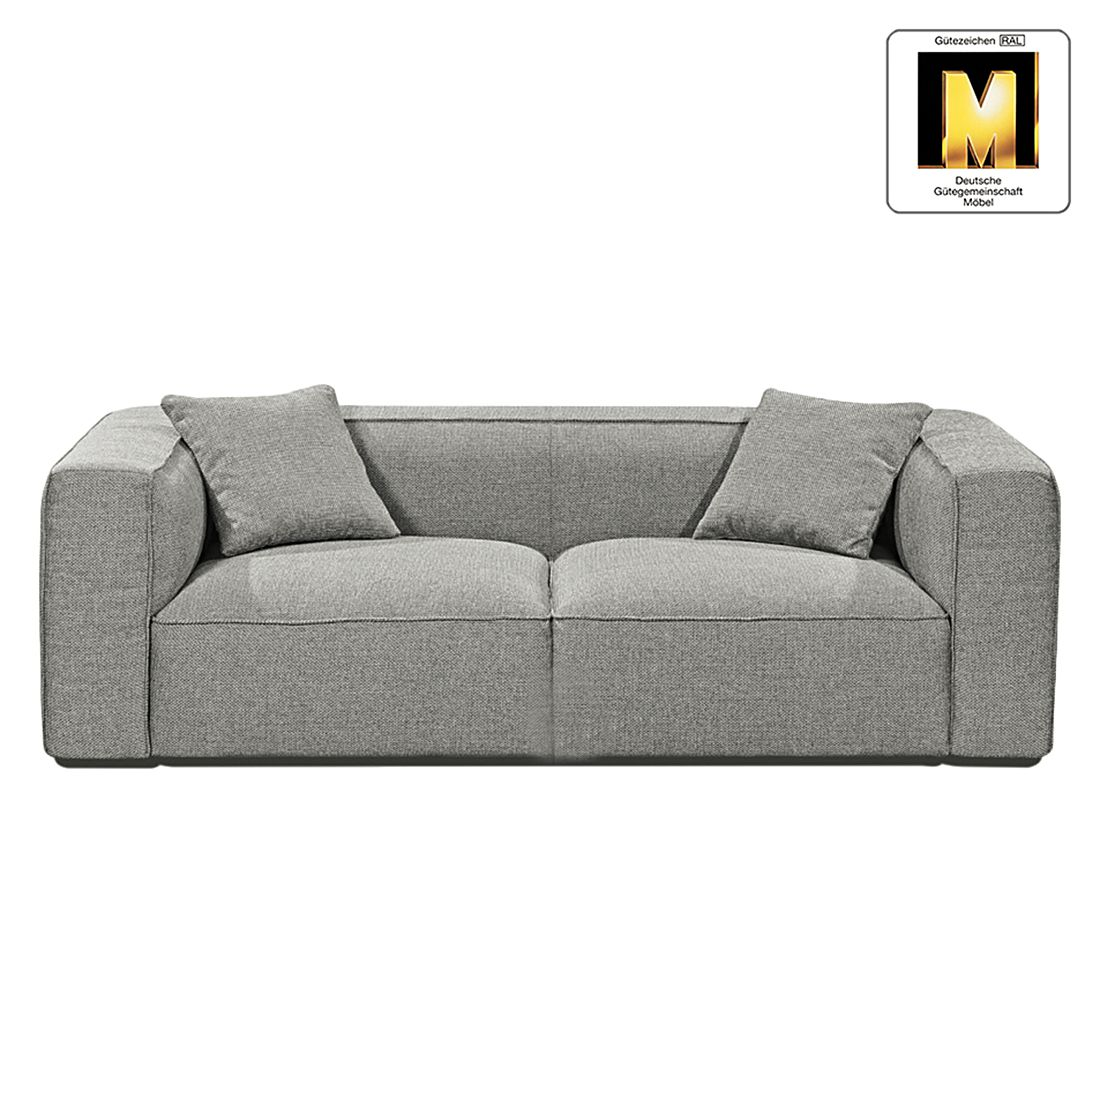 sofa casual line viii 3 sitzer strukturstoff hellgrau claas claasen g nstig online kaufen. Black Bedroom Furniture Sets. Home Design Ideas